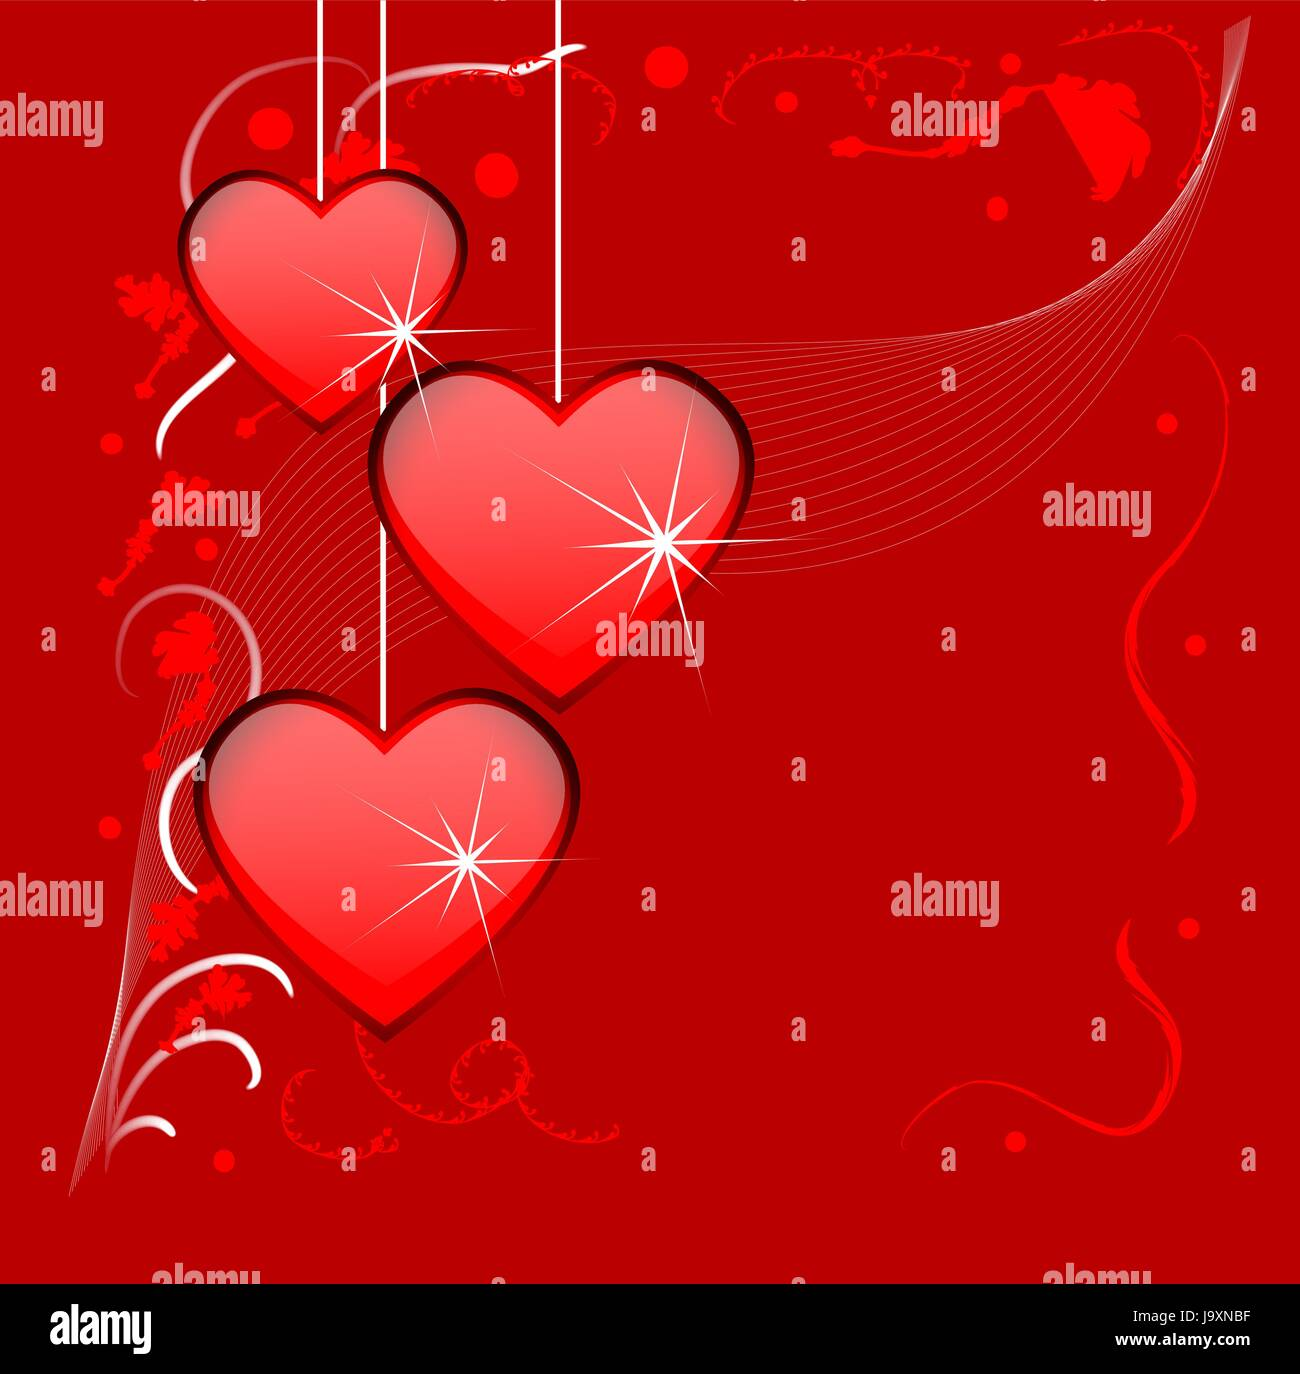 Bright red background with hearts to the day of saint valentin stock bright red background with hearts to the day of saint valentin thecheapjerseys Image collections